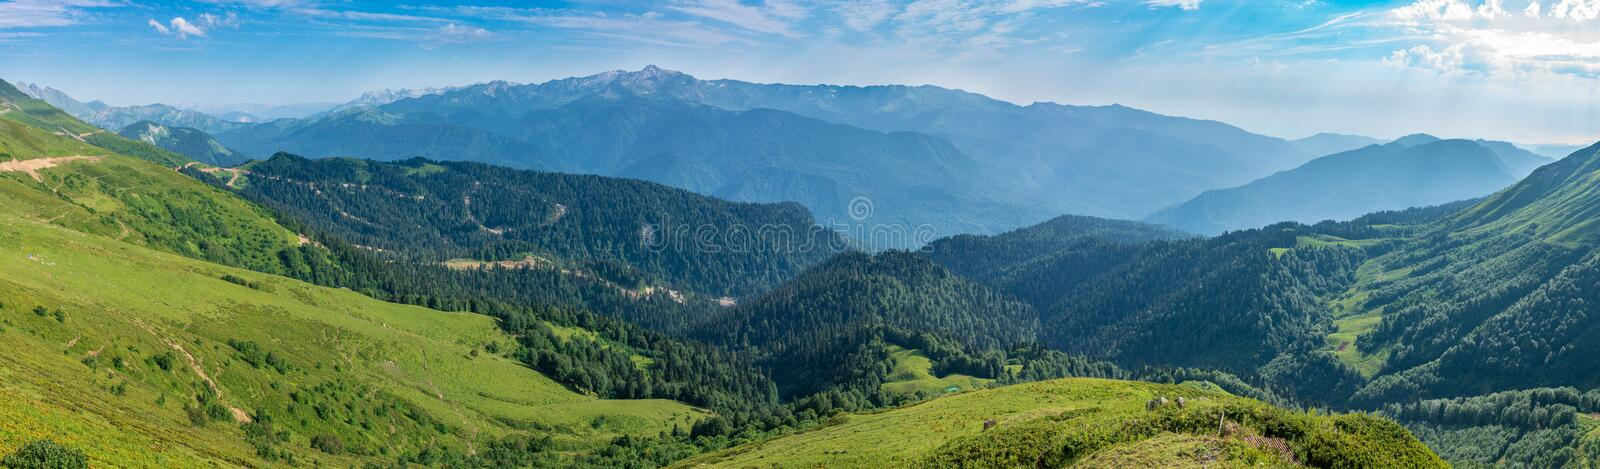 The view from the height of the green mountain valley with a cable car, surrounded by high mountains. Snow-capped mountain peaks. On the horizon. Krasnaya royalty free stock photos